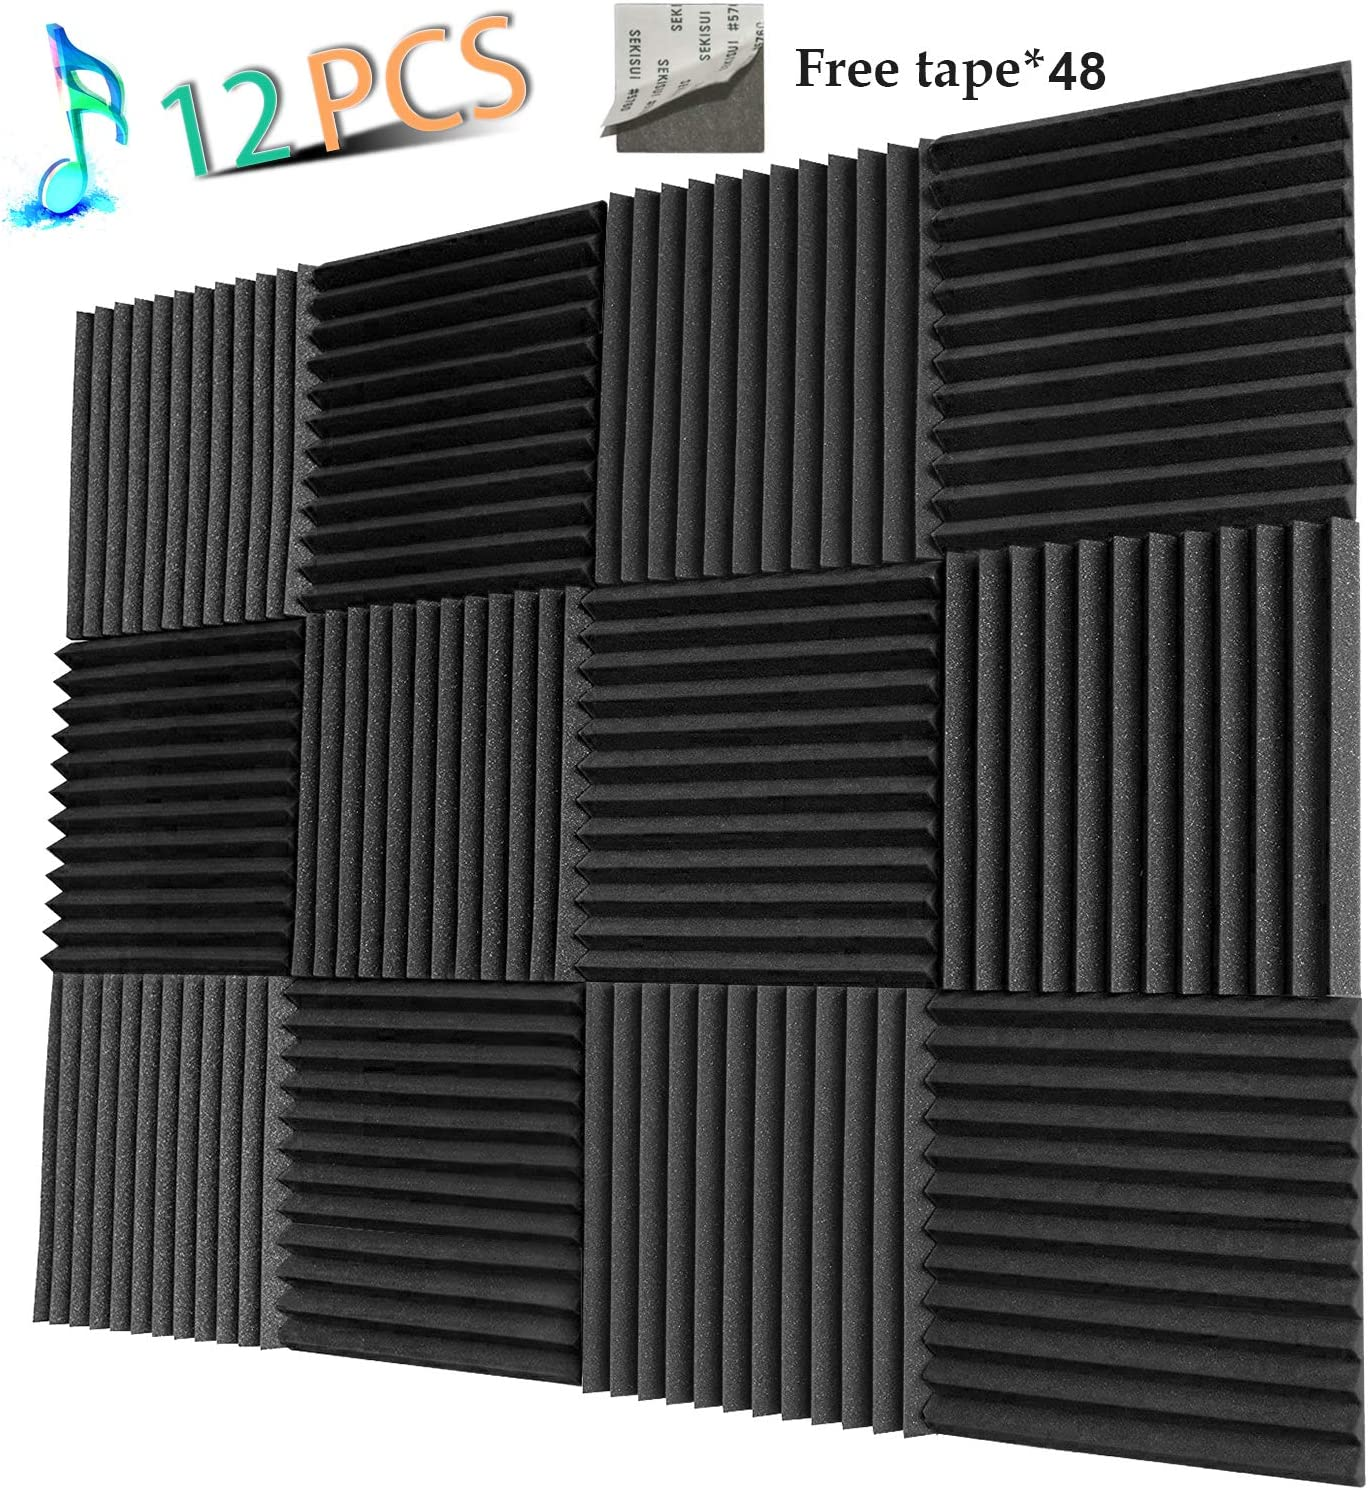 Acoustic Panels Studio Foam Sound Proof Panels Nosie Dampening Foam Studio Music Equipment Acoustical Treatments Foam 12 Pack-12''12''1''